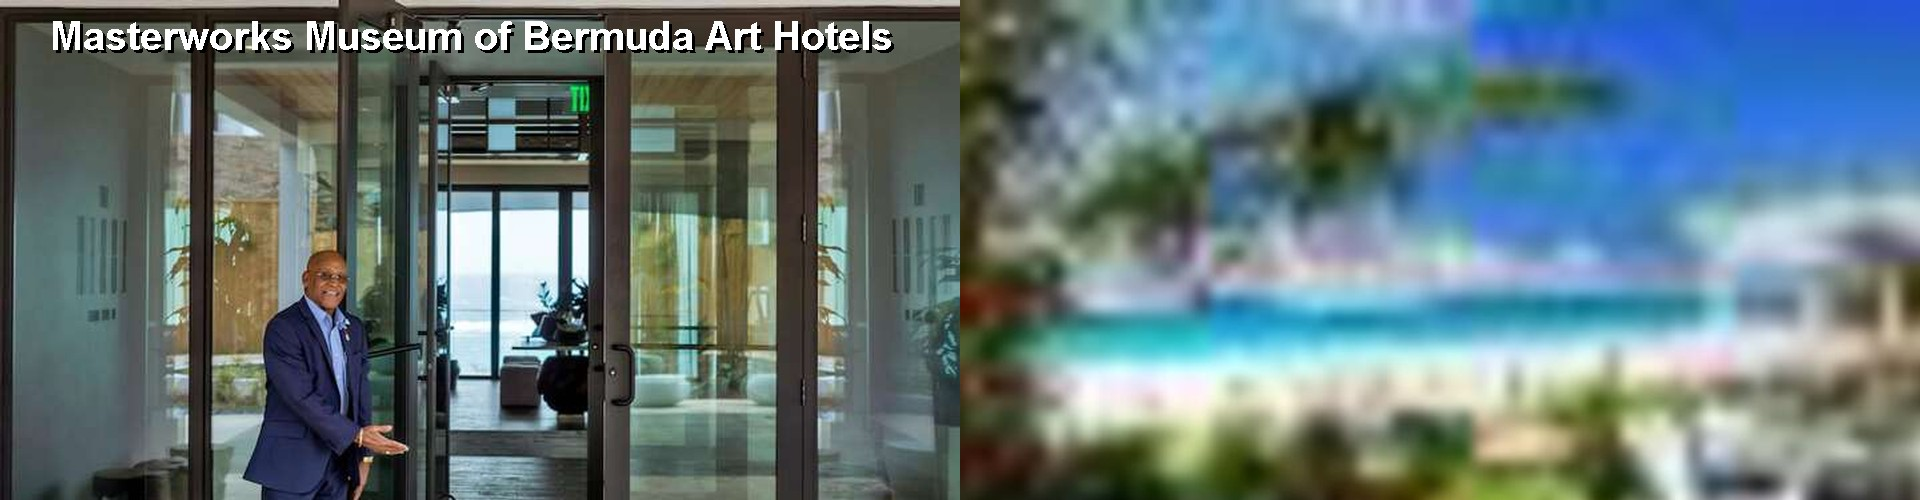 5 Best Hotels near Masterworks Museum of Bermuda Art